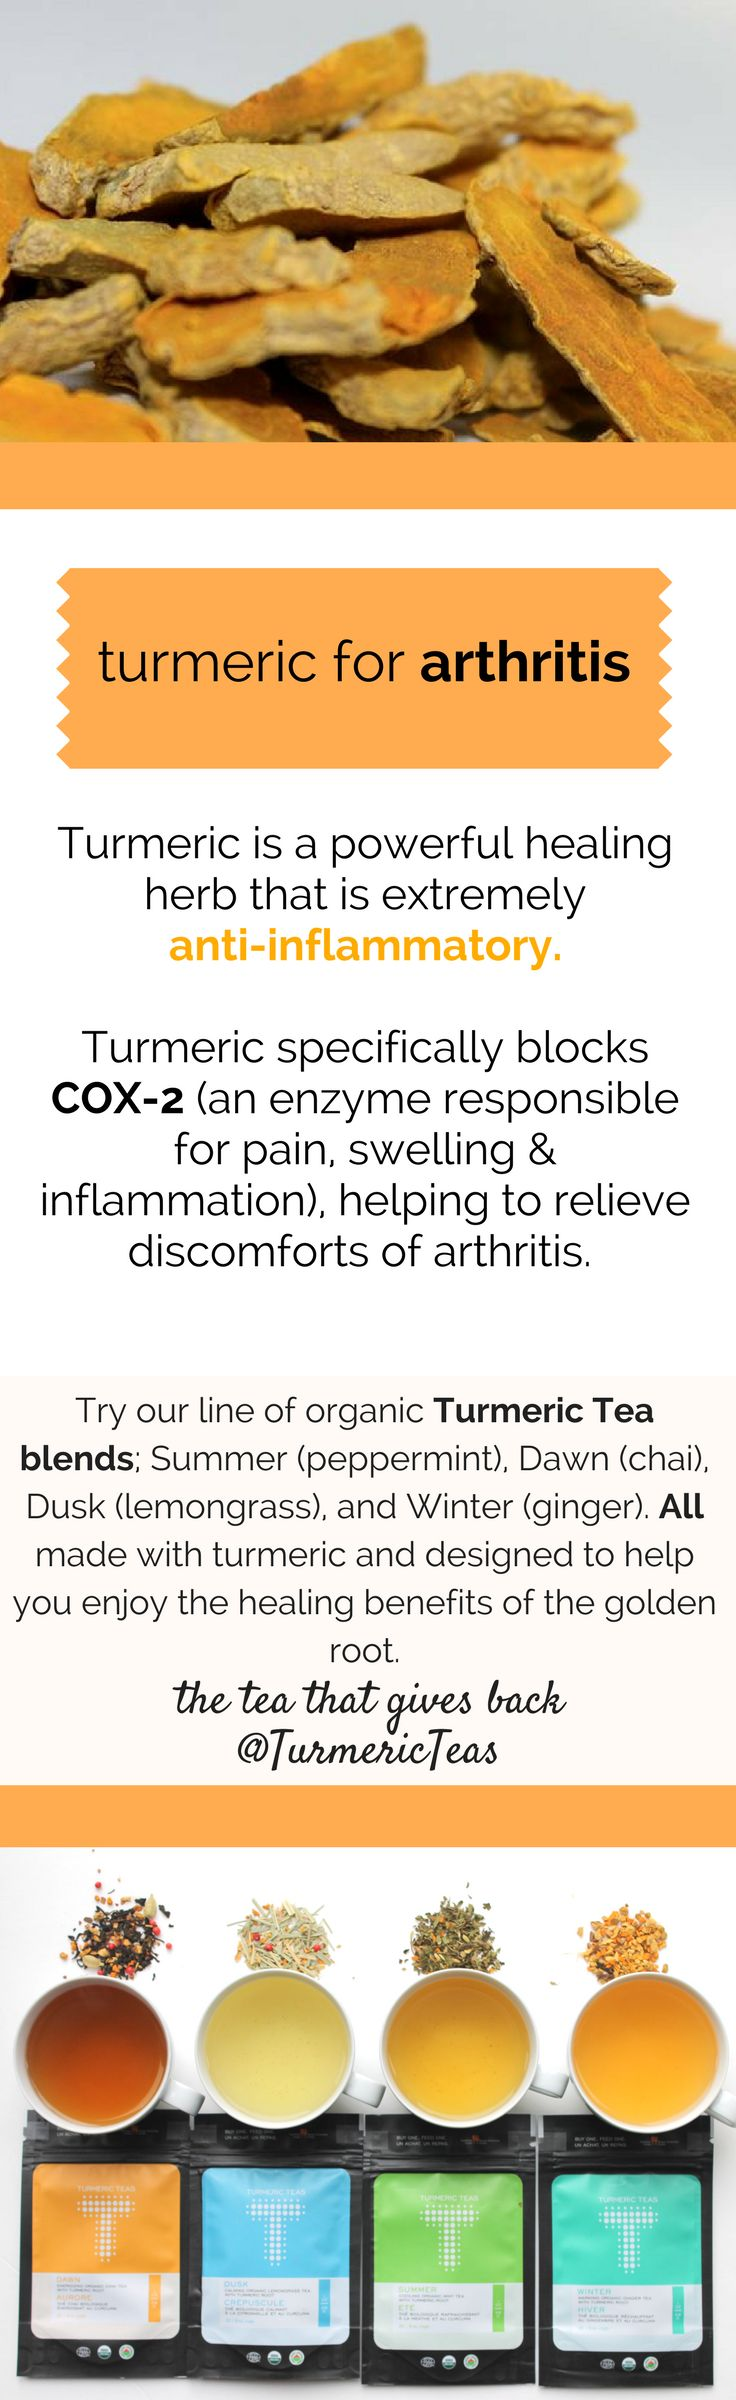 Arthritis discomfort can be relieved with the help of turmeric. Click to read how turmeric and arthritis prevention are linked on our blog. #arthritis #arthritisremedy #remedy #healthyliving #antiinflammatory #turmeric #turmericteas